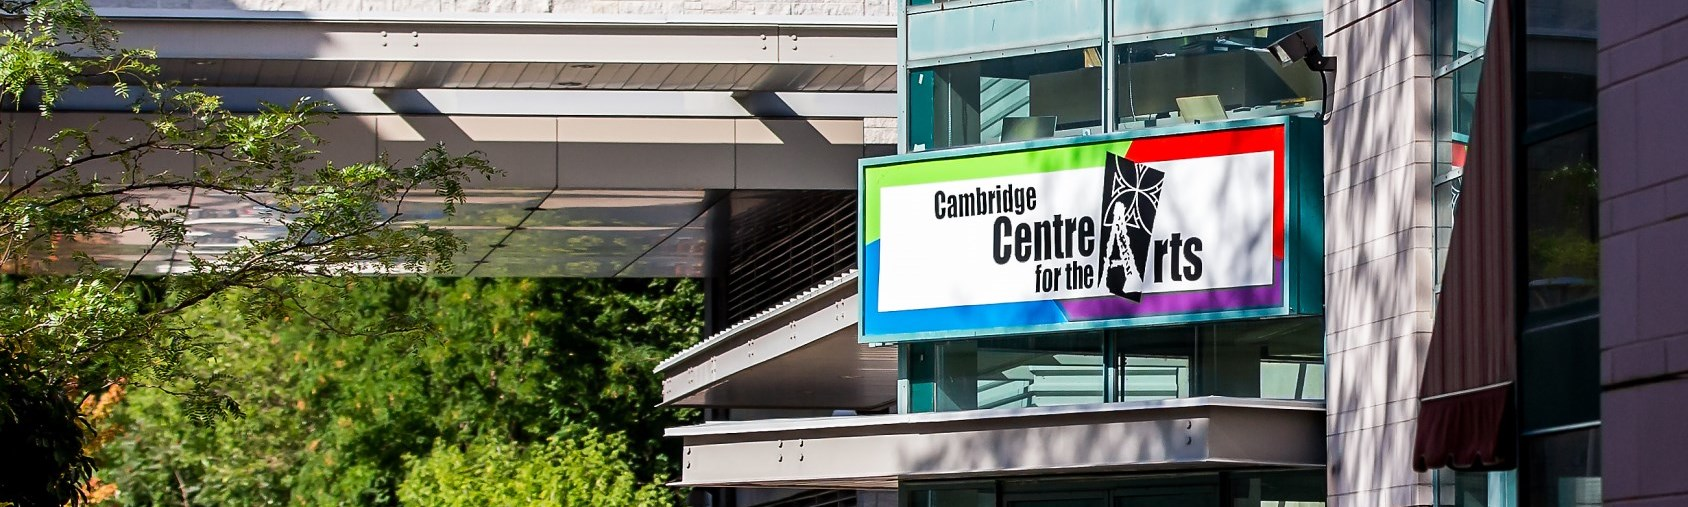 Centre for the Arts sign